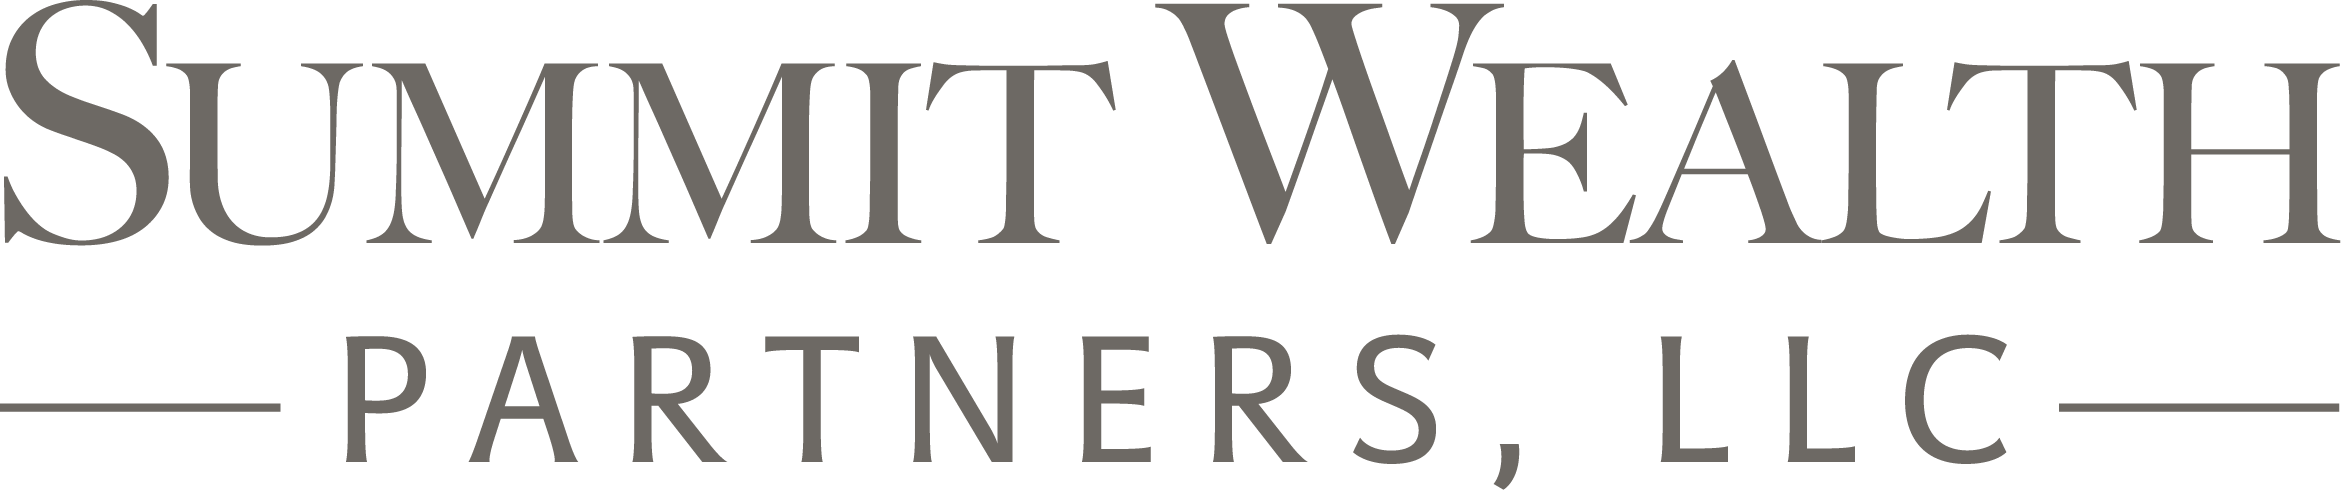 Logo for Summit Wealth Partners, LLC - Financial Planning and Wealth Management